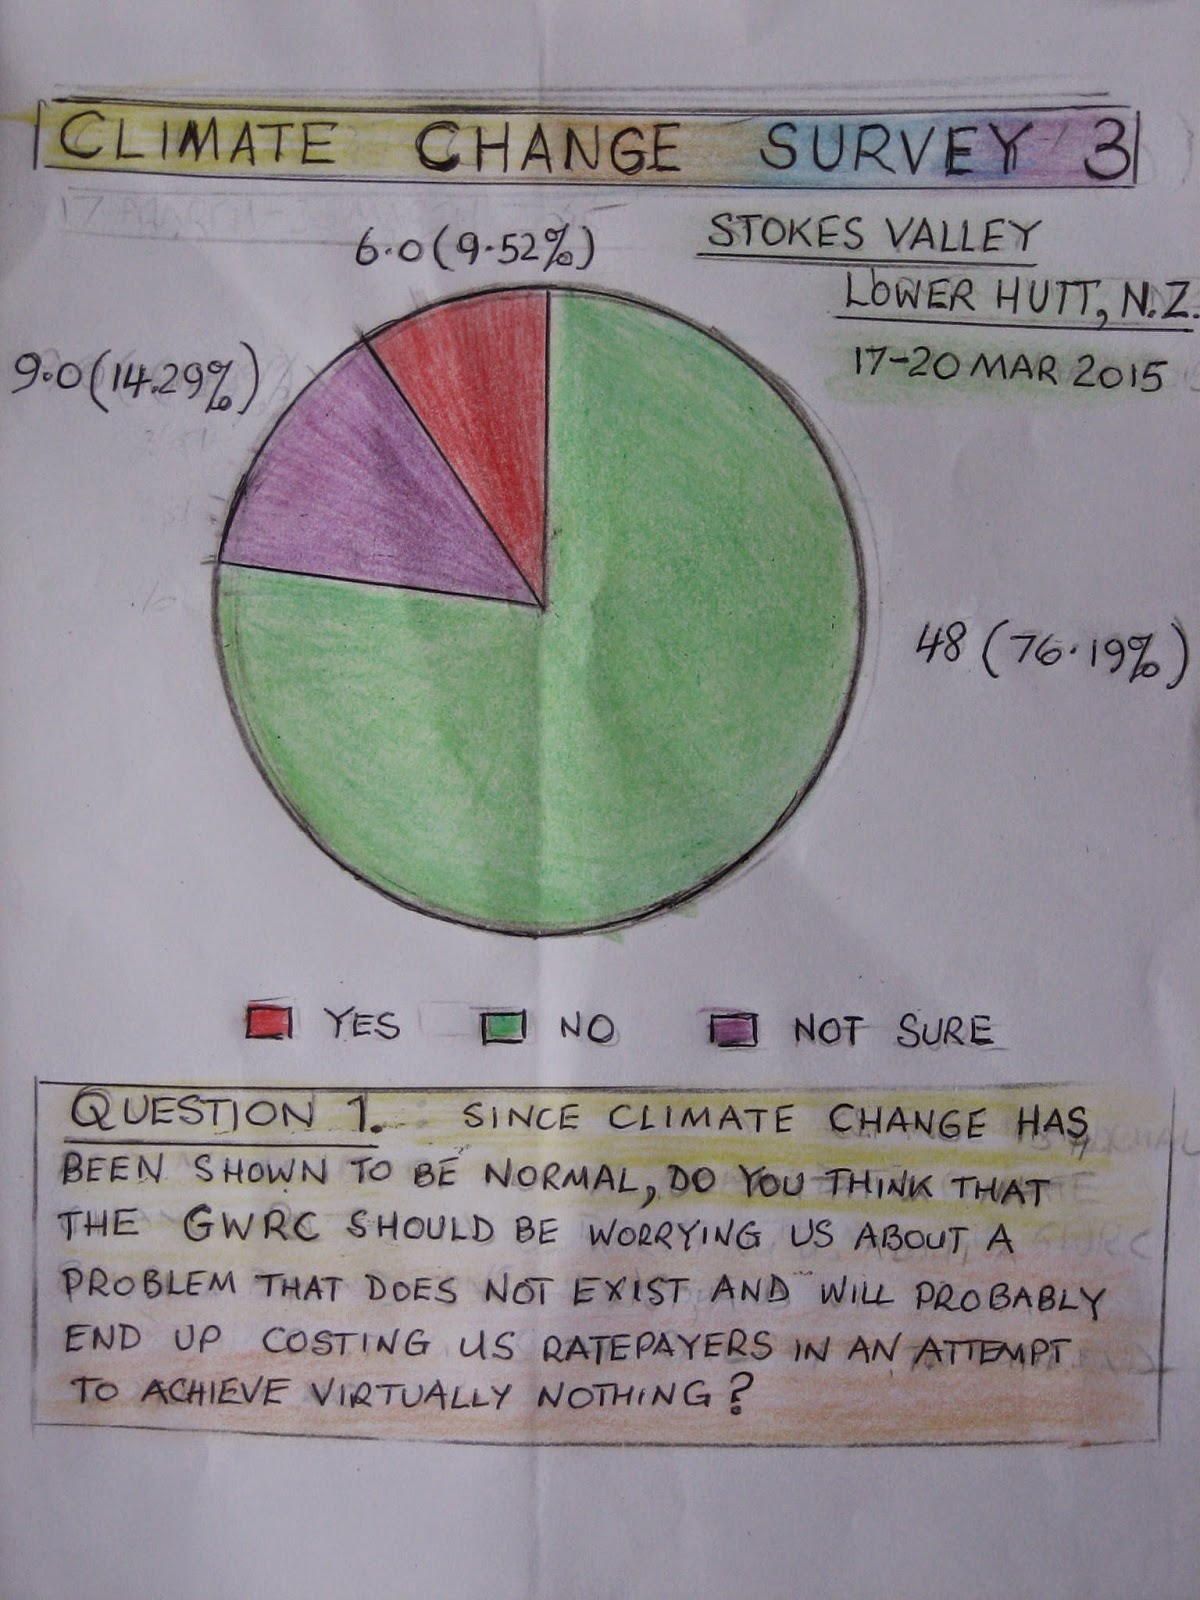 Holy roman catholic church vs vatican council ii march 2015 question 1 climate change is normal ccuart Choice Image